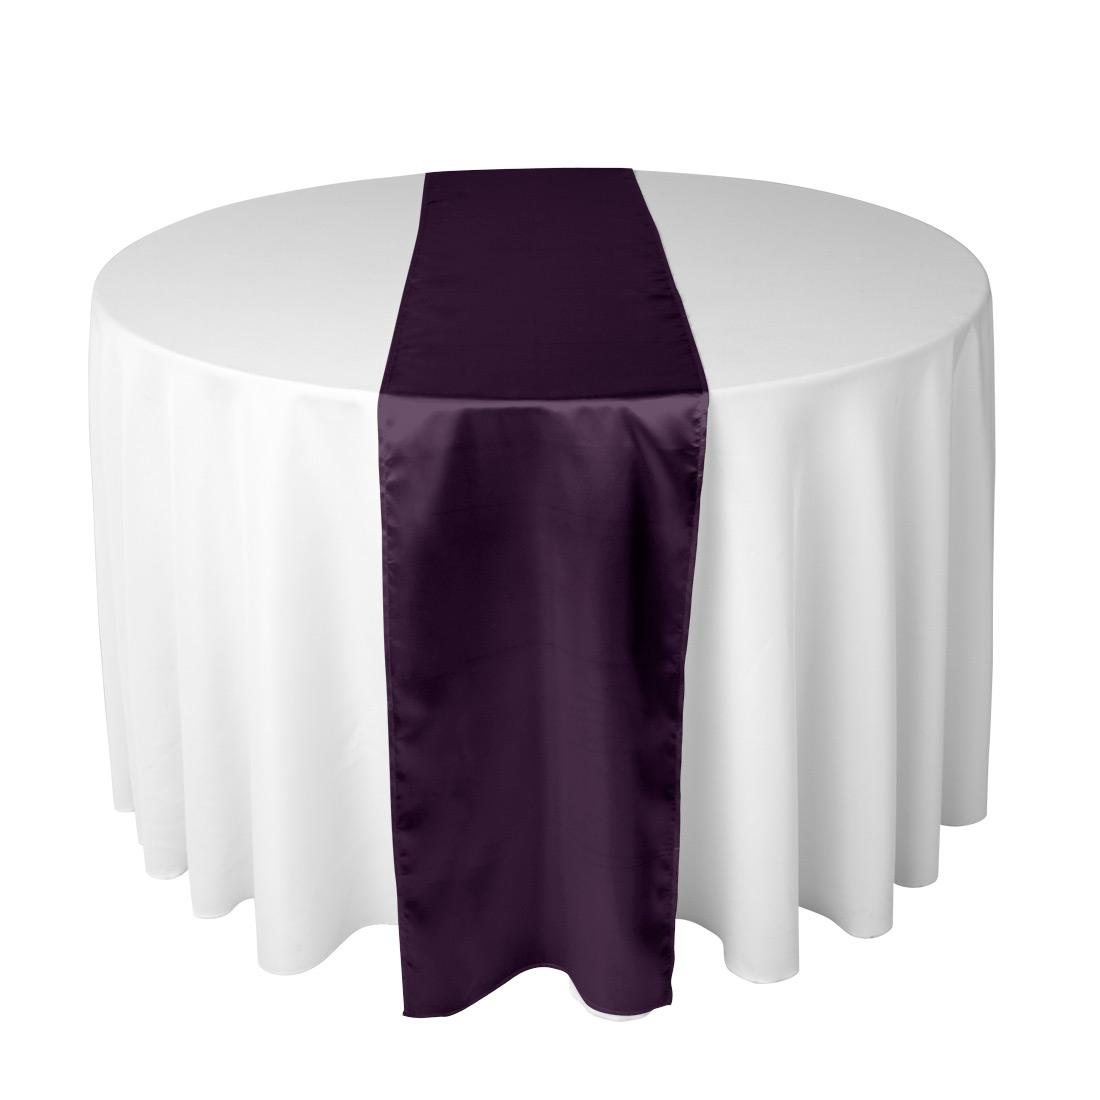 30x275cm Eggplant Satin Table Runner For Wedding Reception Or Shower Dinner Party Decorations Green Wedding Decorations Hire Wedding Decorations From